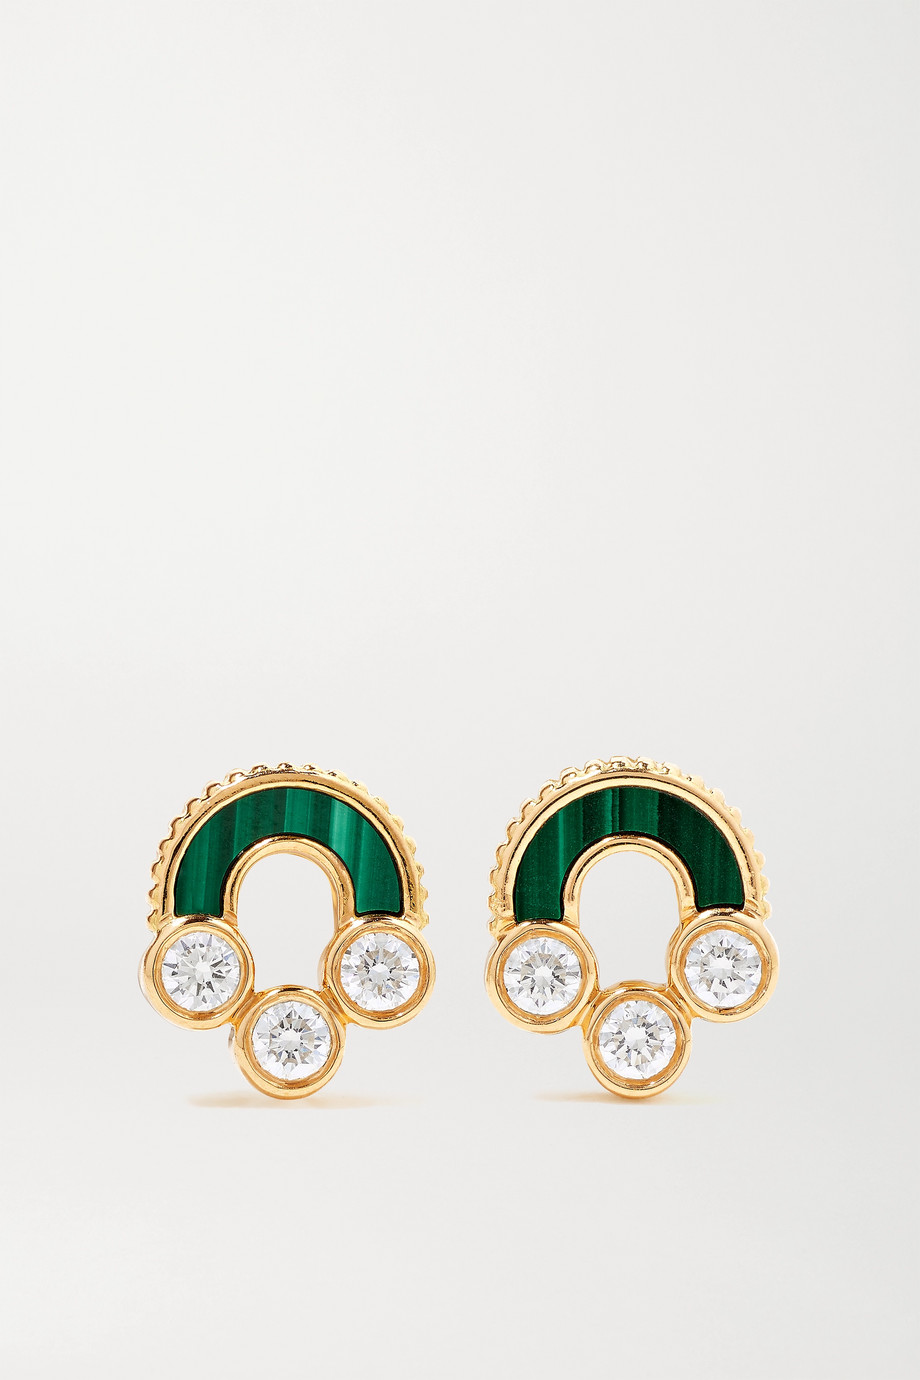 Viltier Boucles d'oreilles en or 18 carats, malachites et diamants Magnetic Studs - NET SUSTAIN